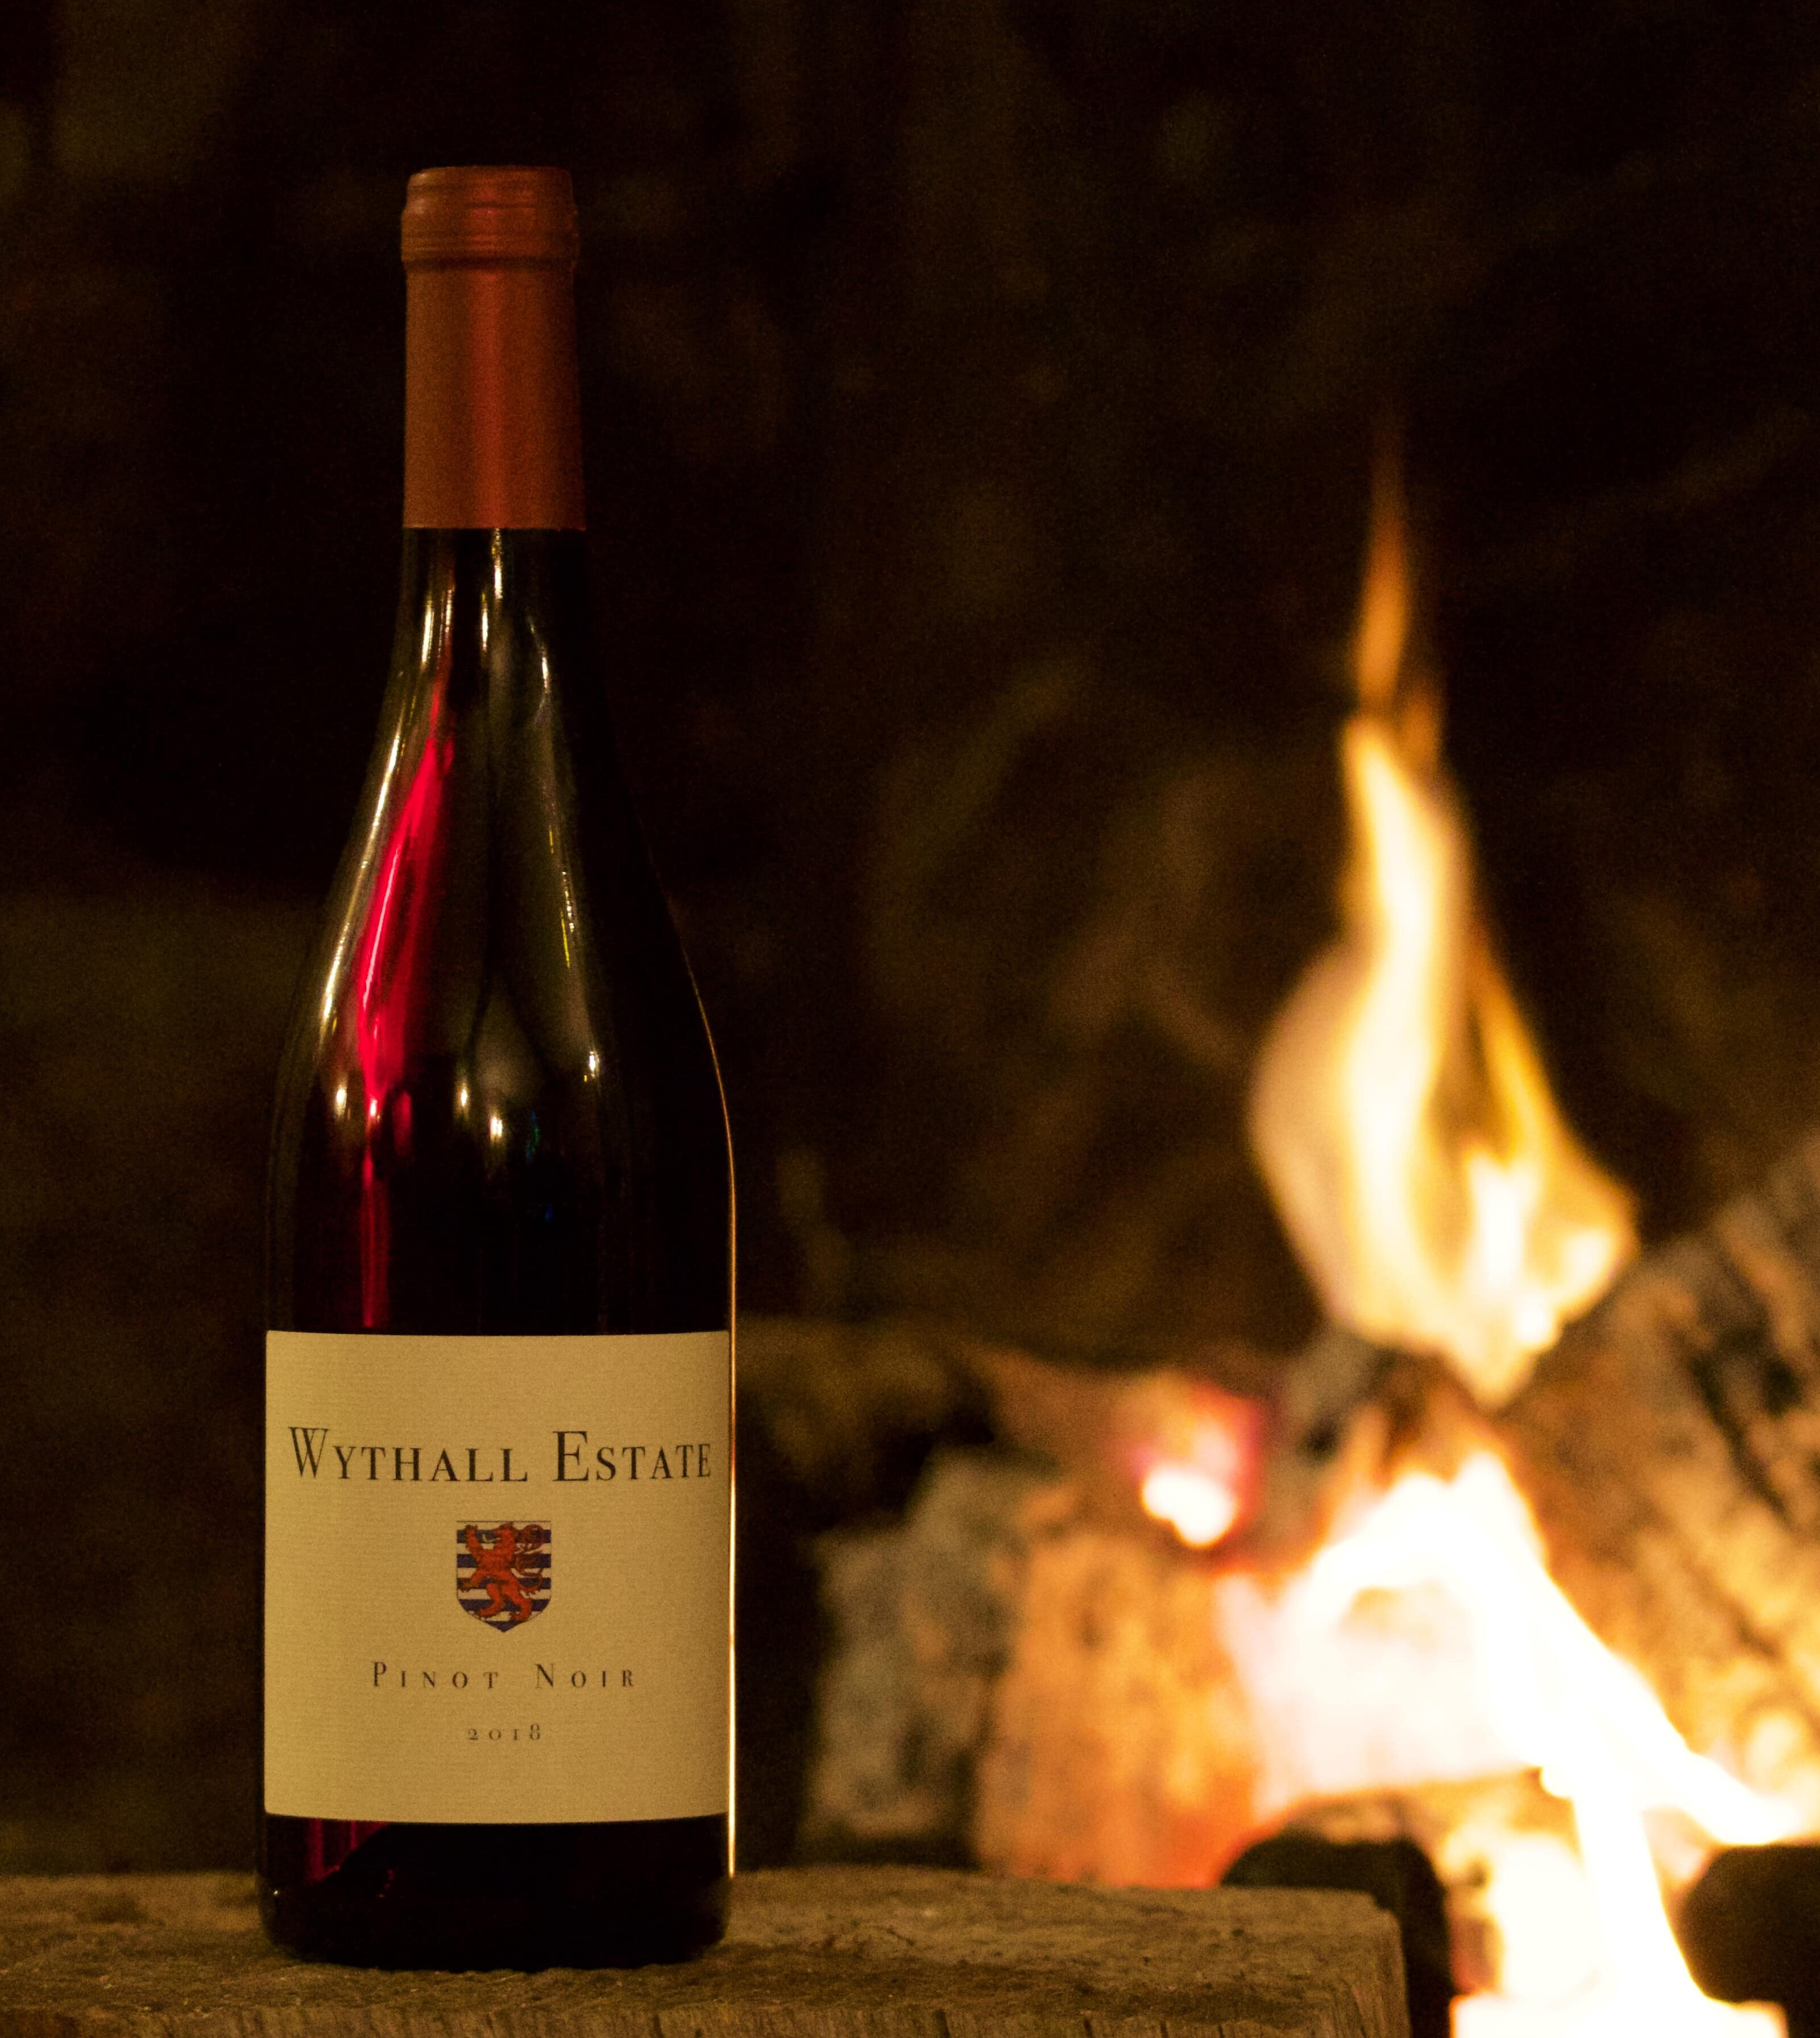 Wythall Estate Wine by fire